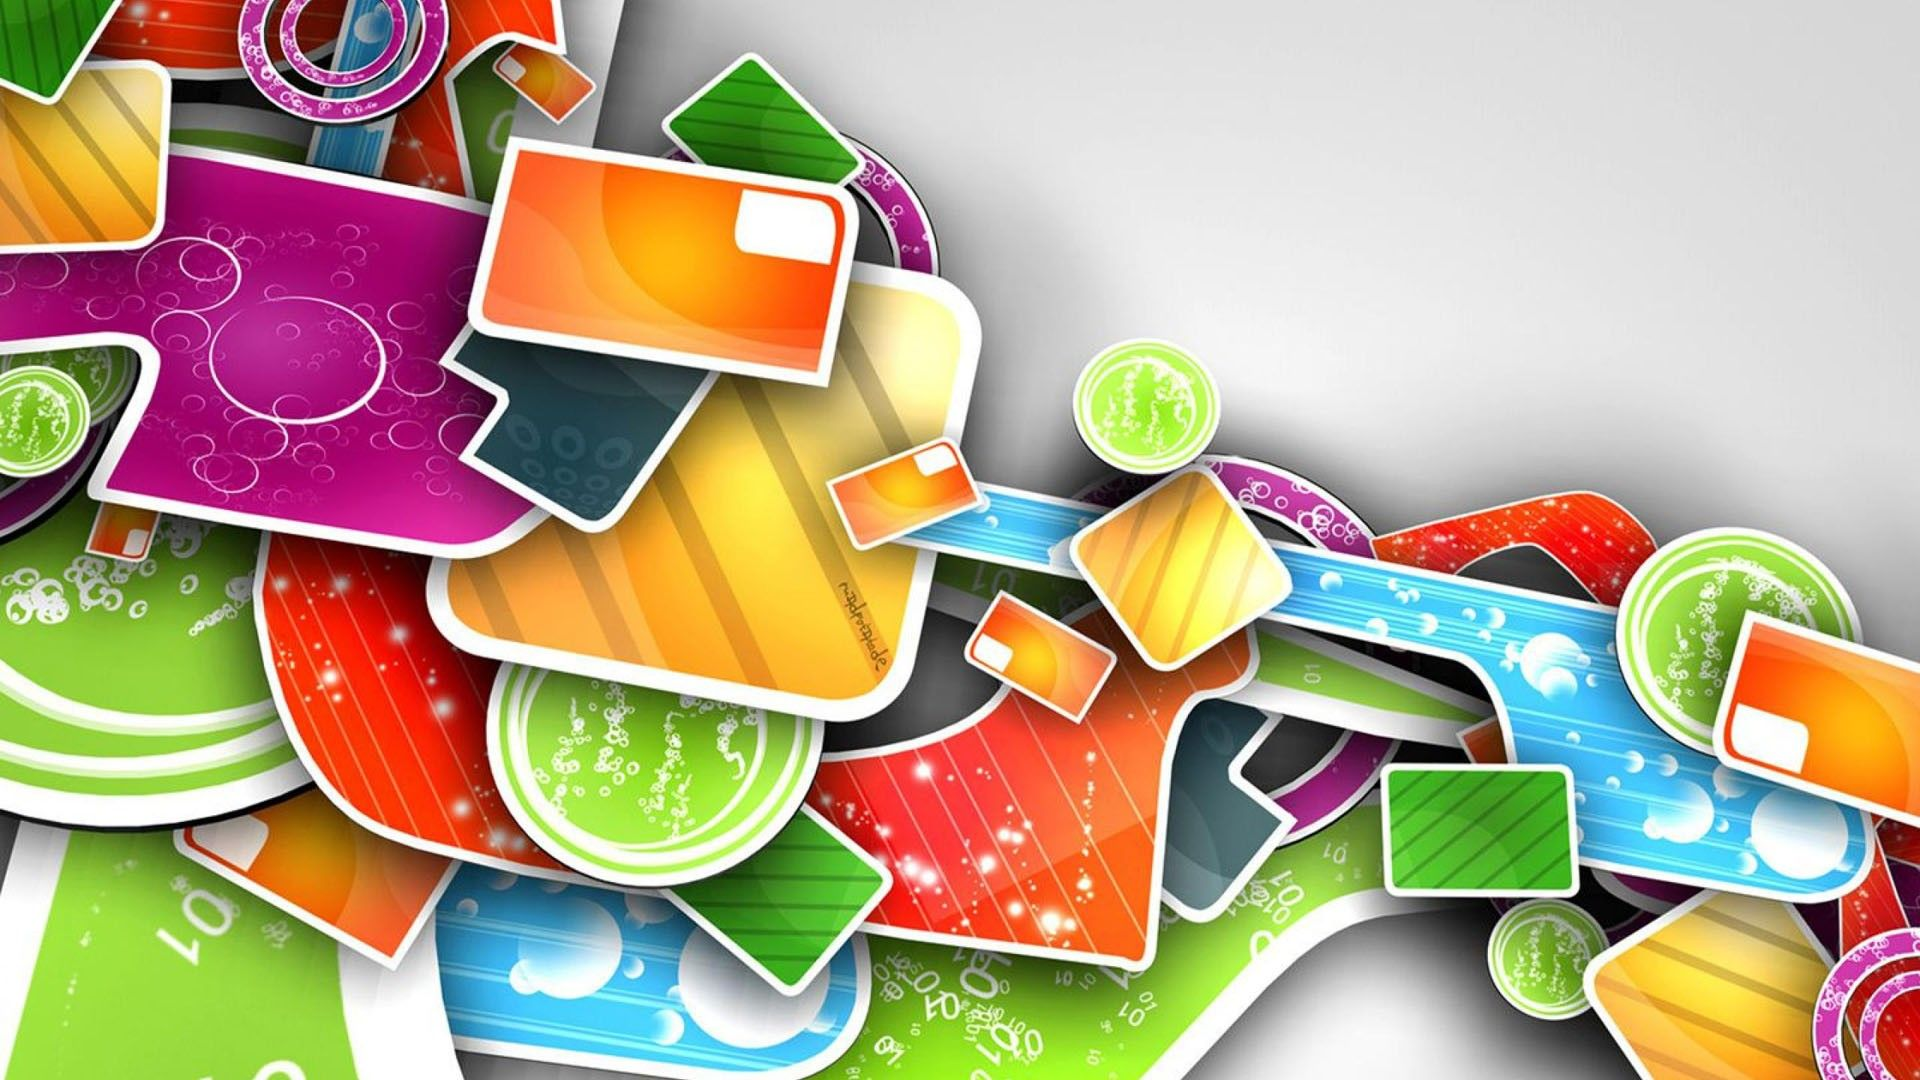 just follow the wide collection of 3d wallpapers 1080p free